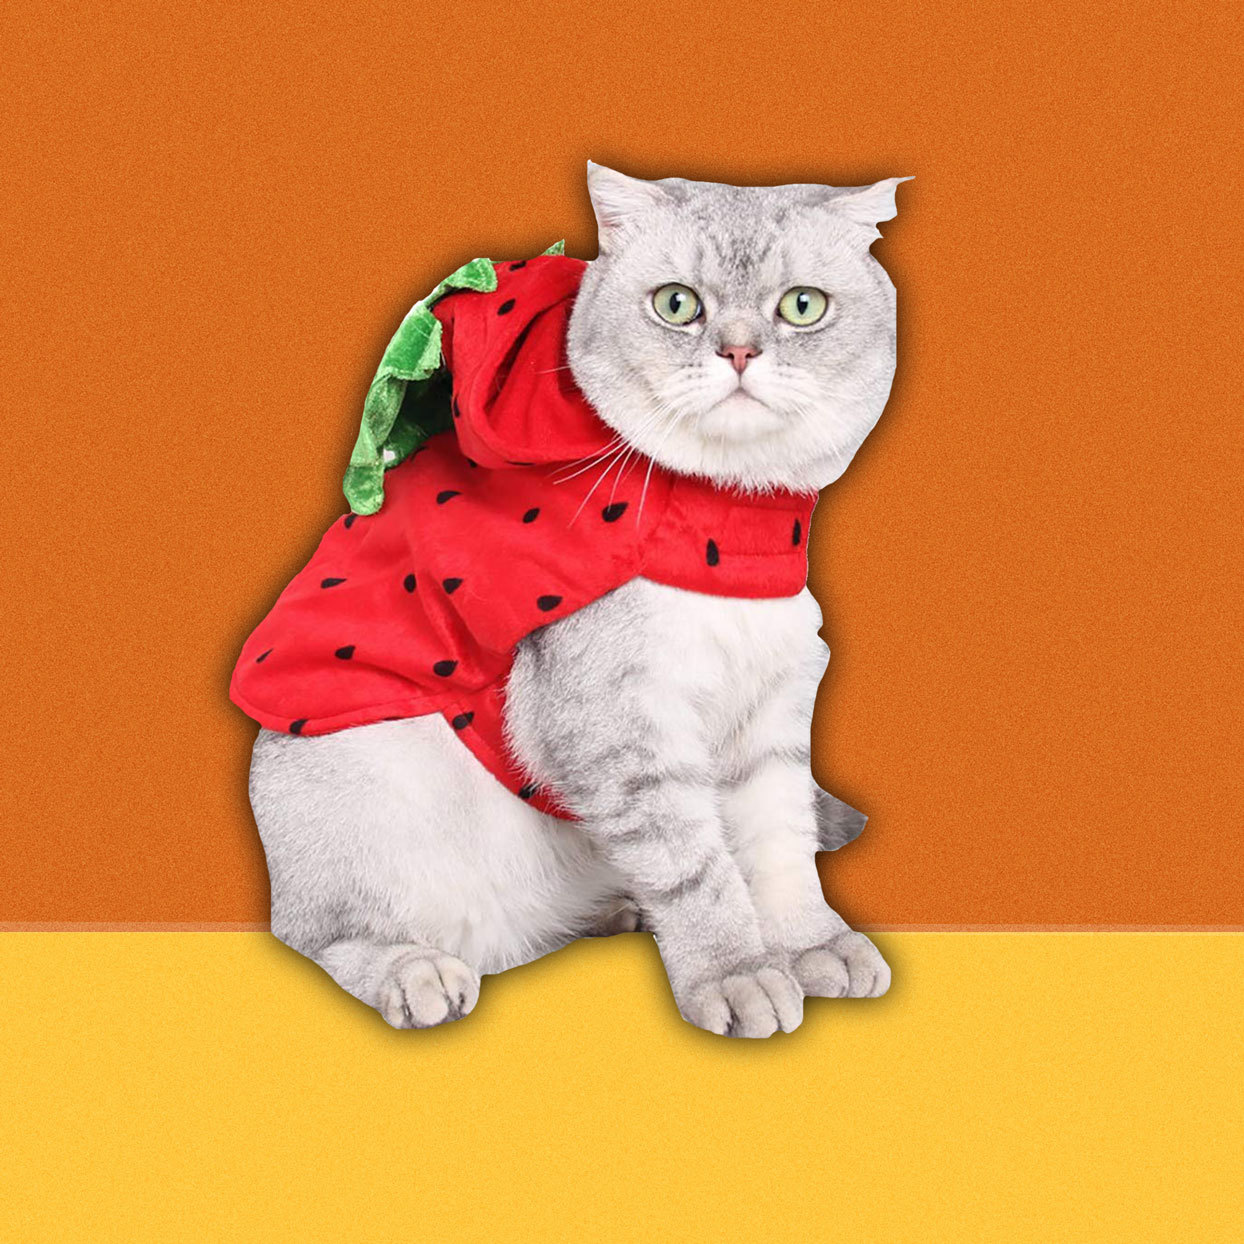 Your cat will be extra-cute as this delicious summer berry with a stem hood. This costume will help keep your feline cozy if you're experiencing colder weather.$12.99